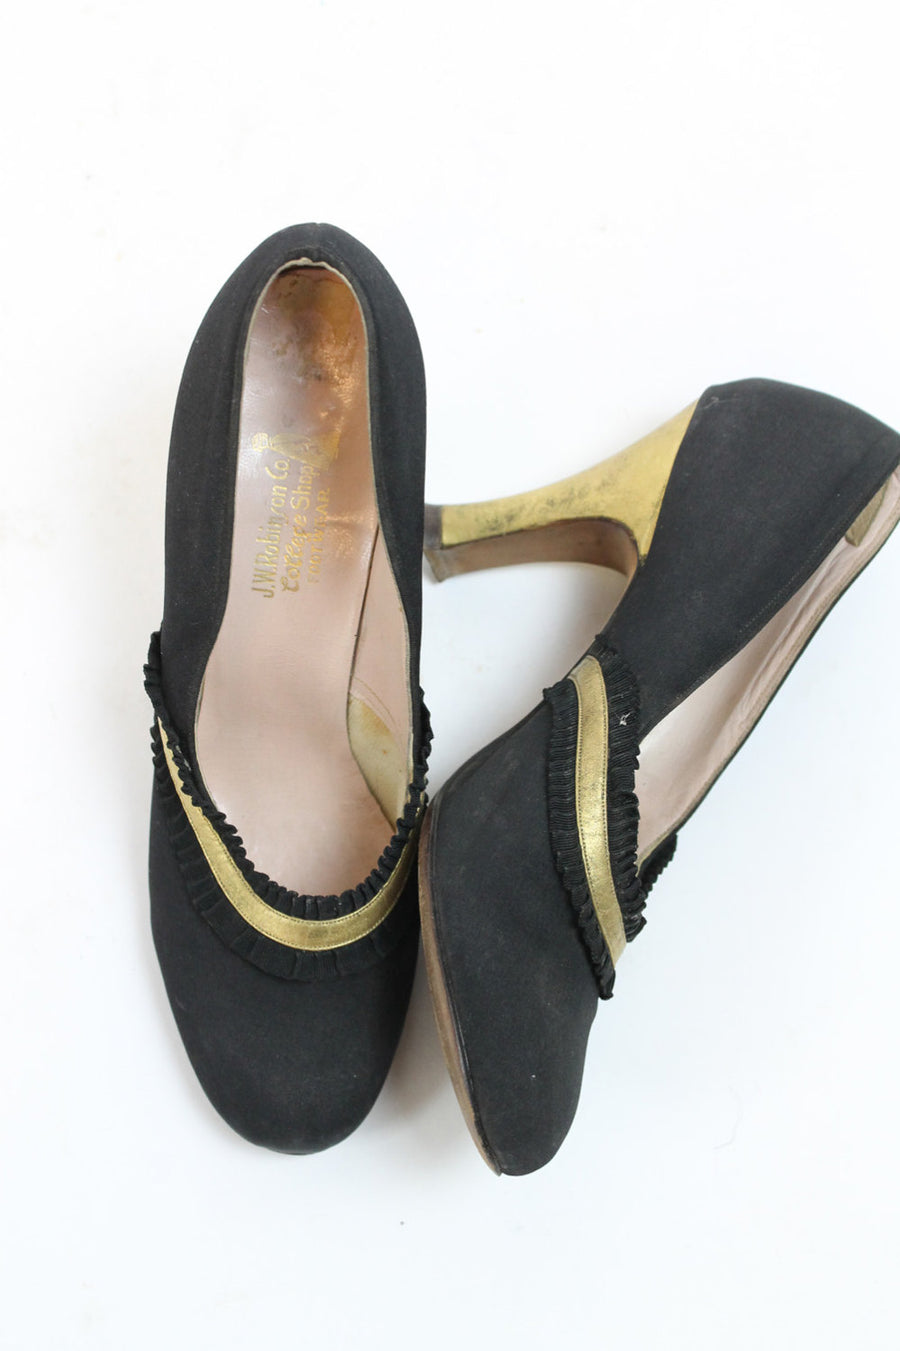 1930s gold and black deco shoes size 4.5 us | vintage 30s pumps